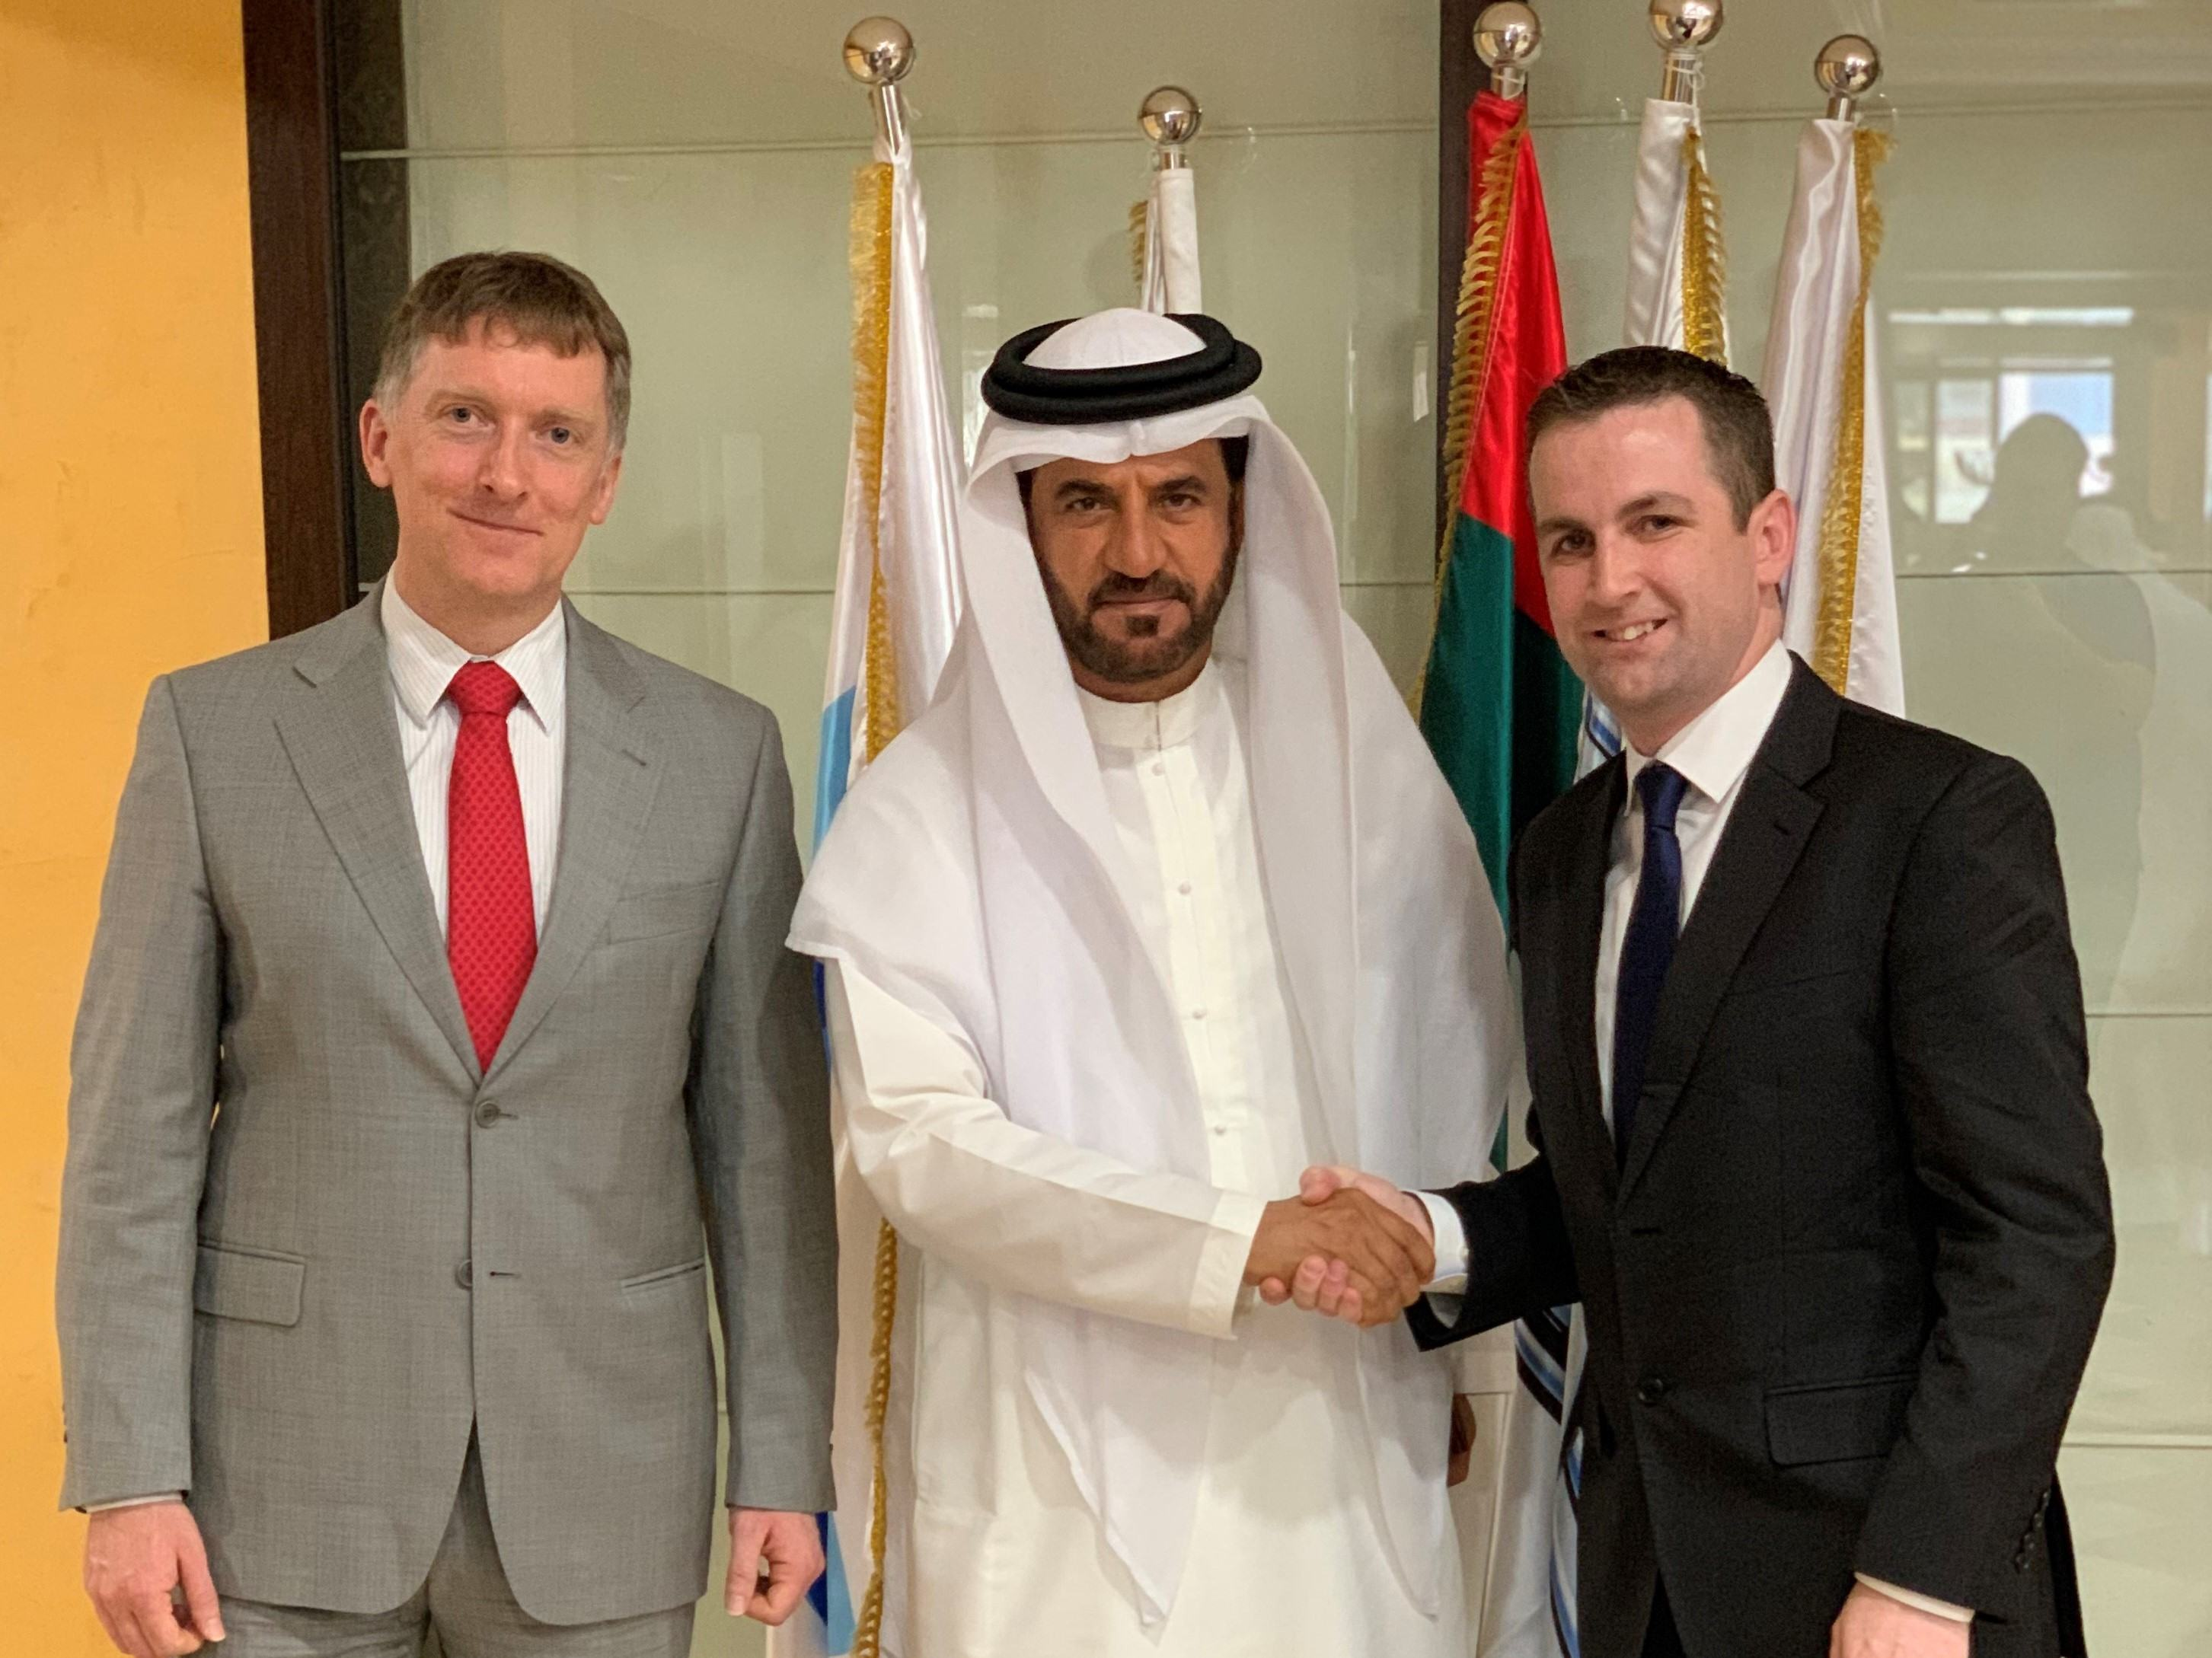 Picture of three men, one in the middle dressed in formal Arab atire, with two men on right shaking hands.